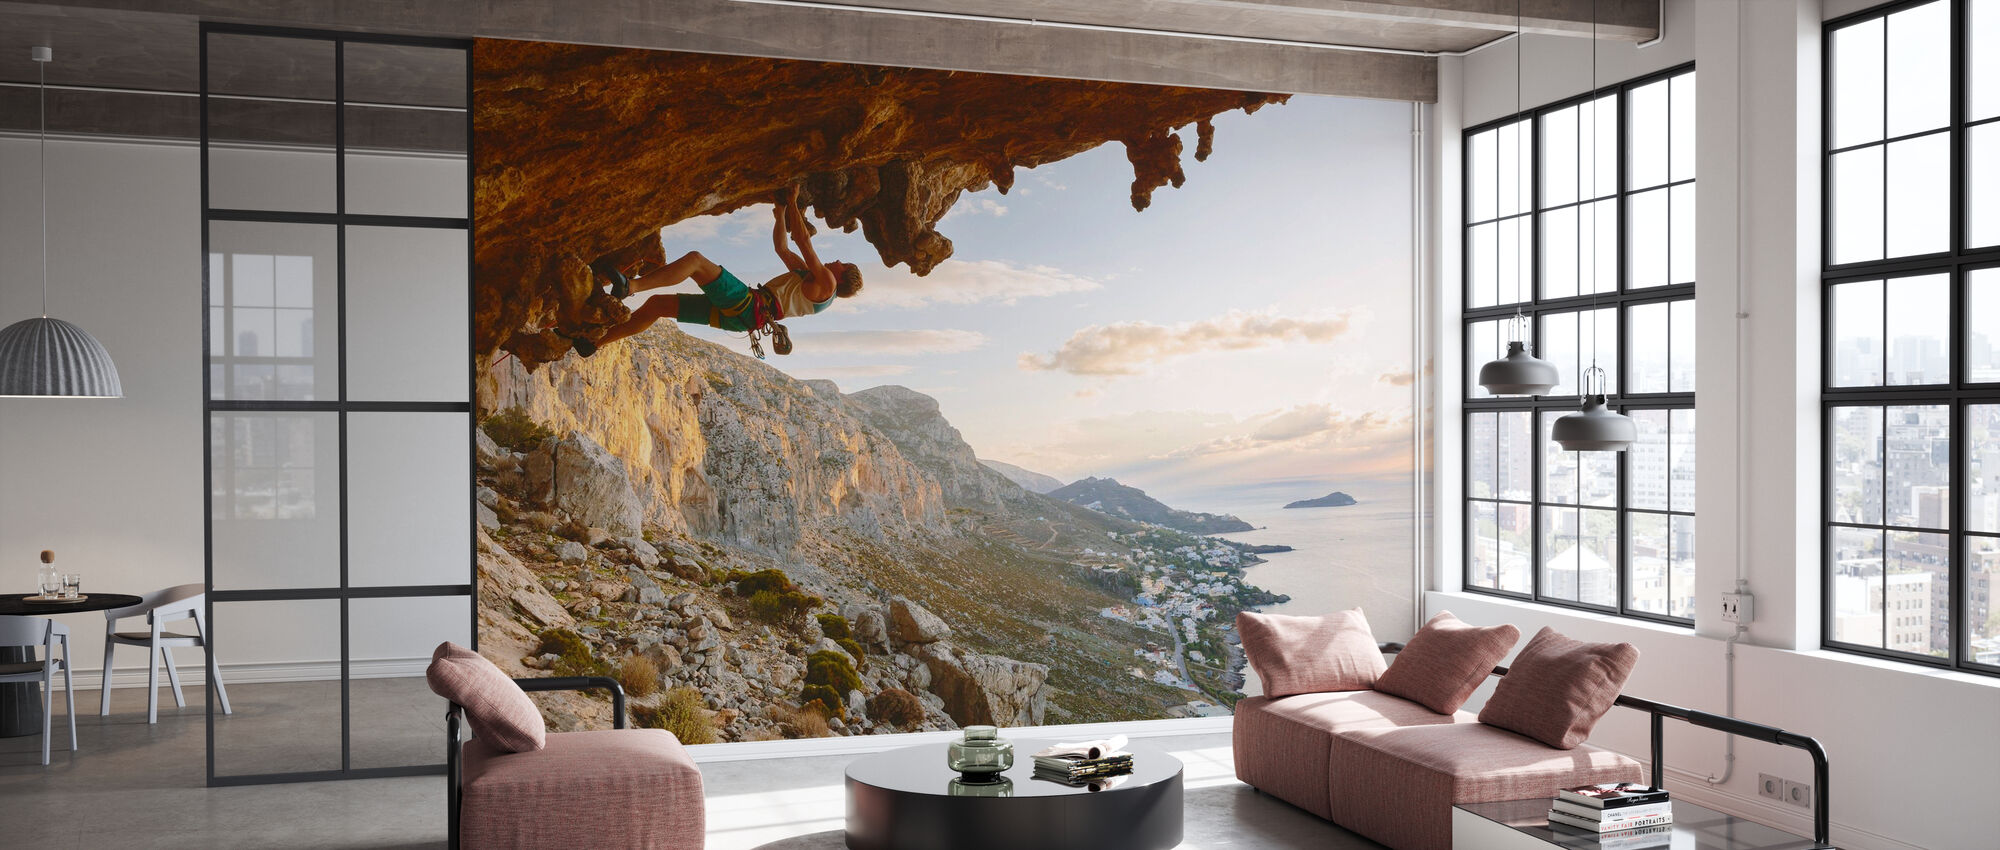 Climbing by the Aegean Sea - Wallpaper - Office